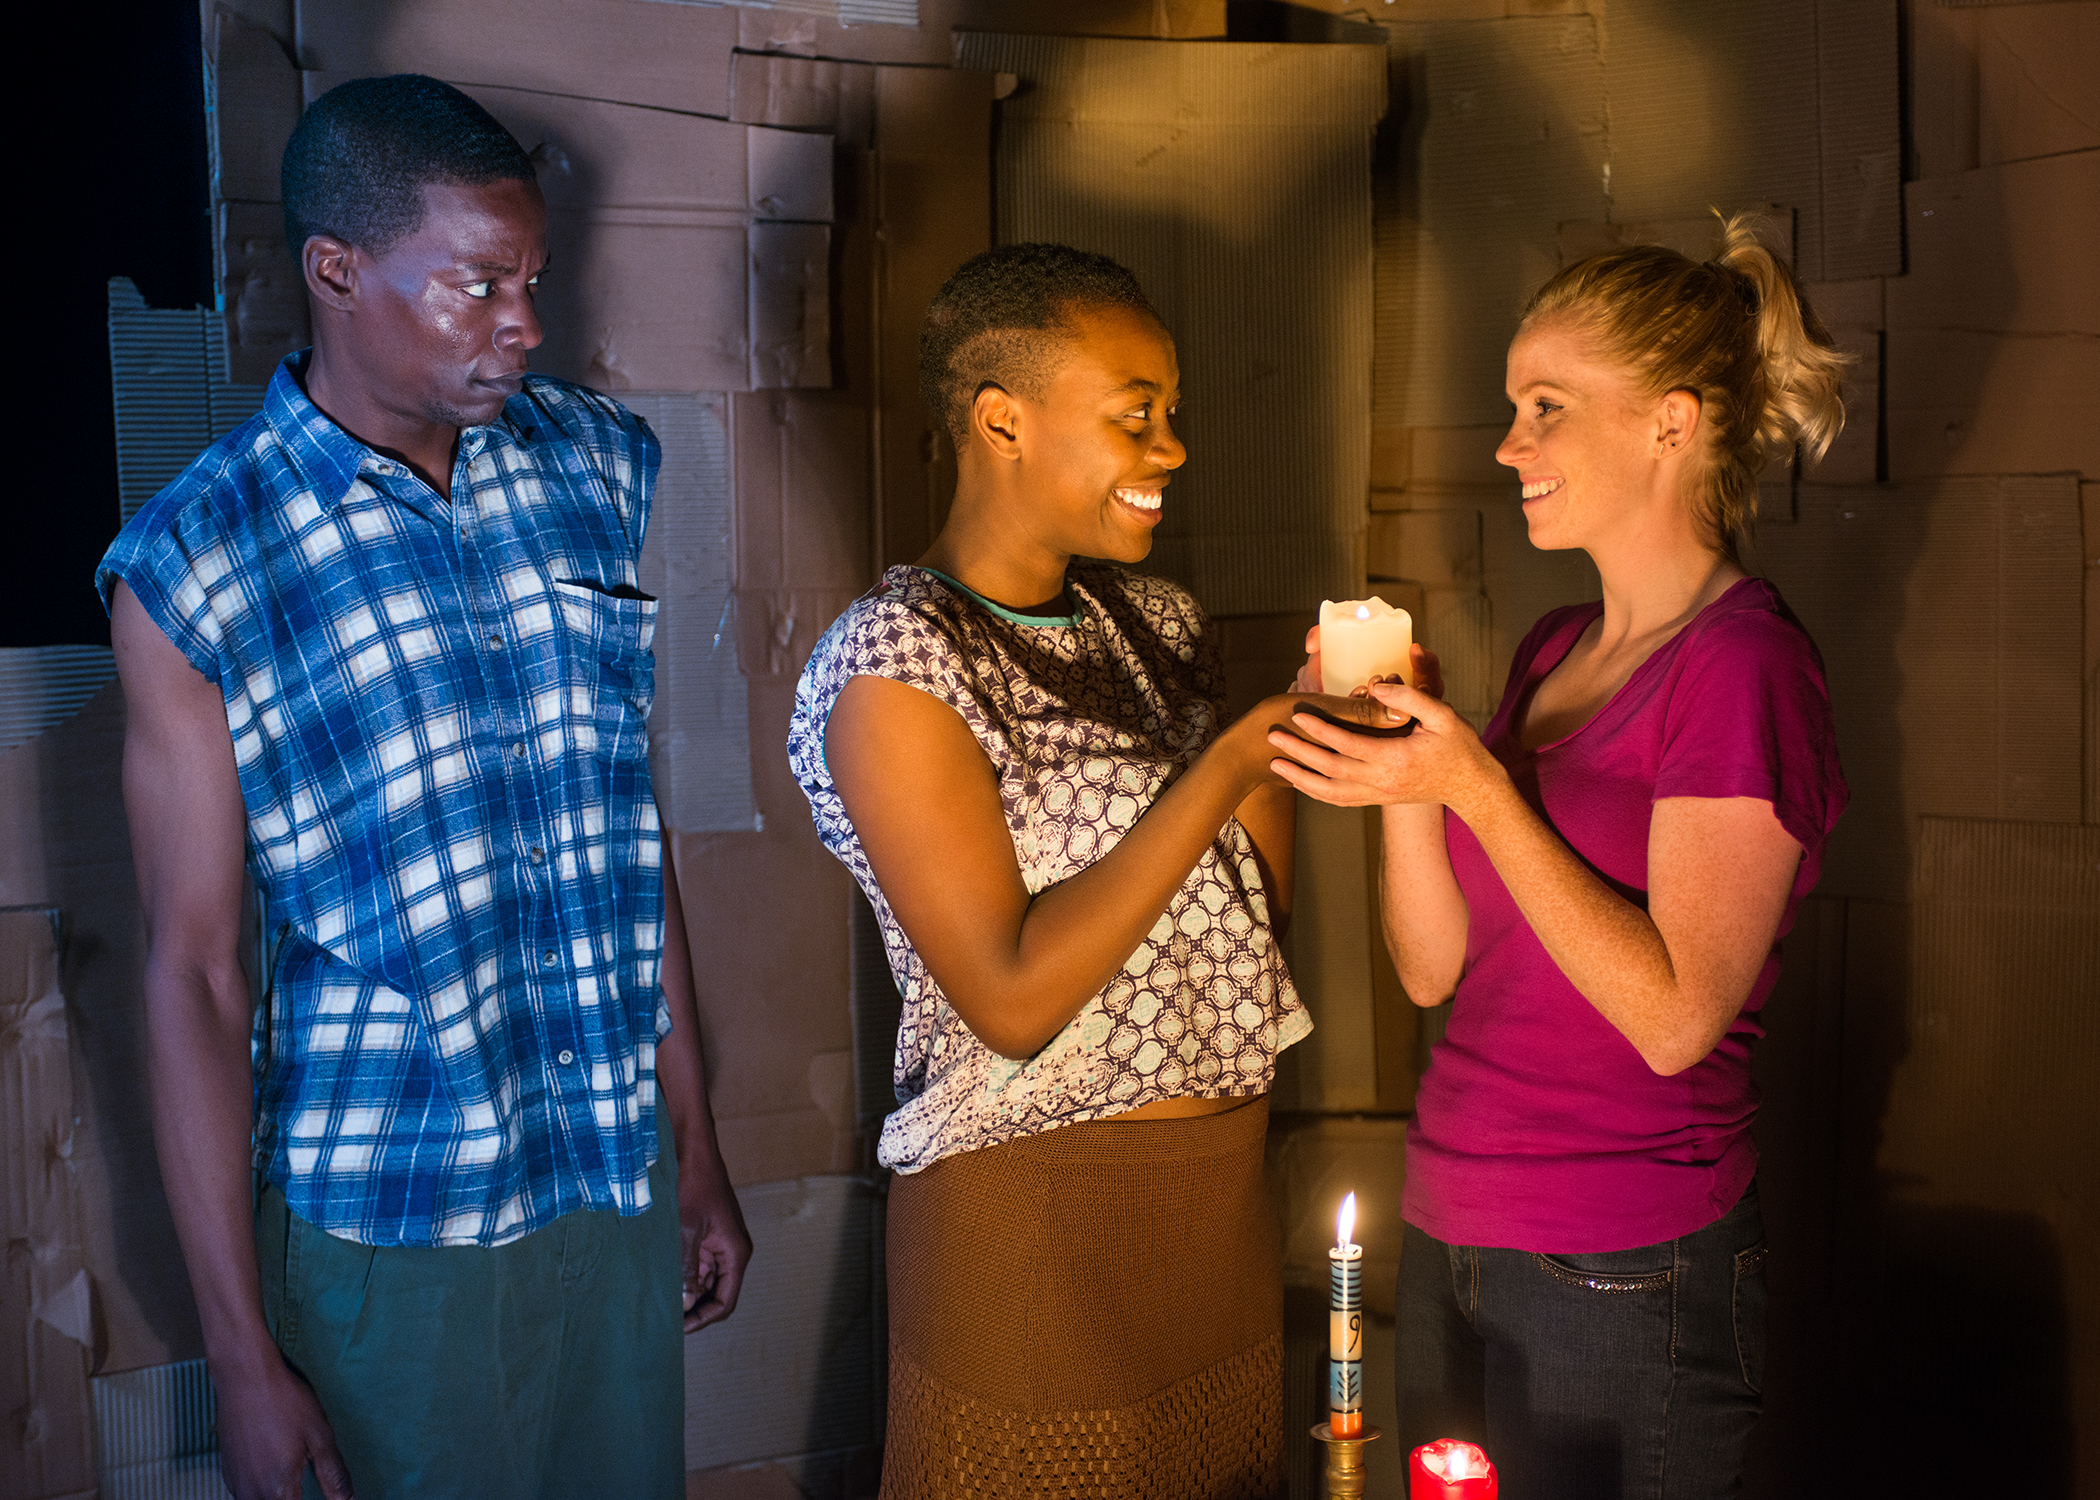 R to L: Child-soldier, Pika (Howard Johnson) looks on as Adiel (Gabriella Momah) and Chris (Megan Timpane) share a stolen moment. Photo by Lois Tema.